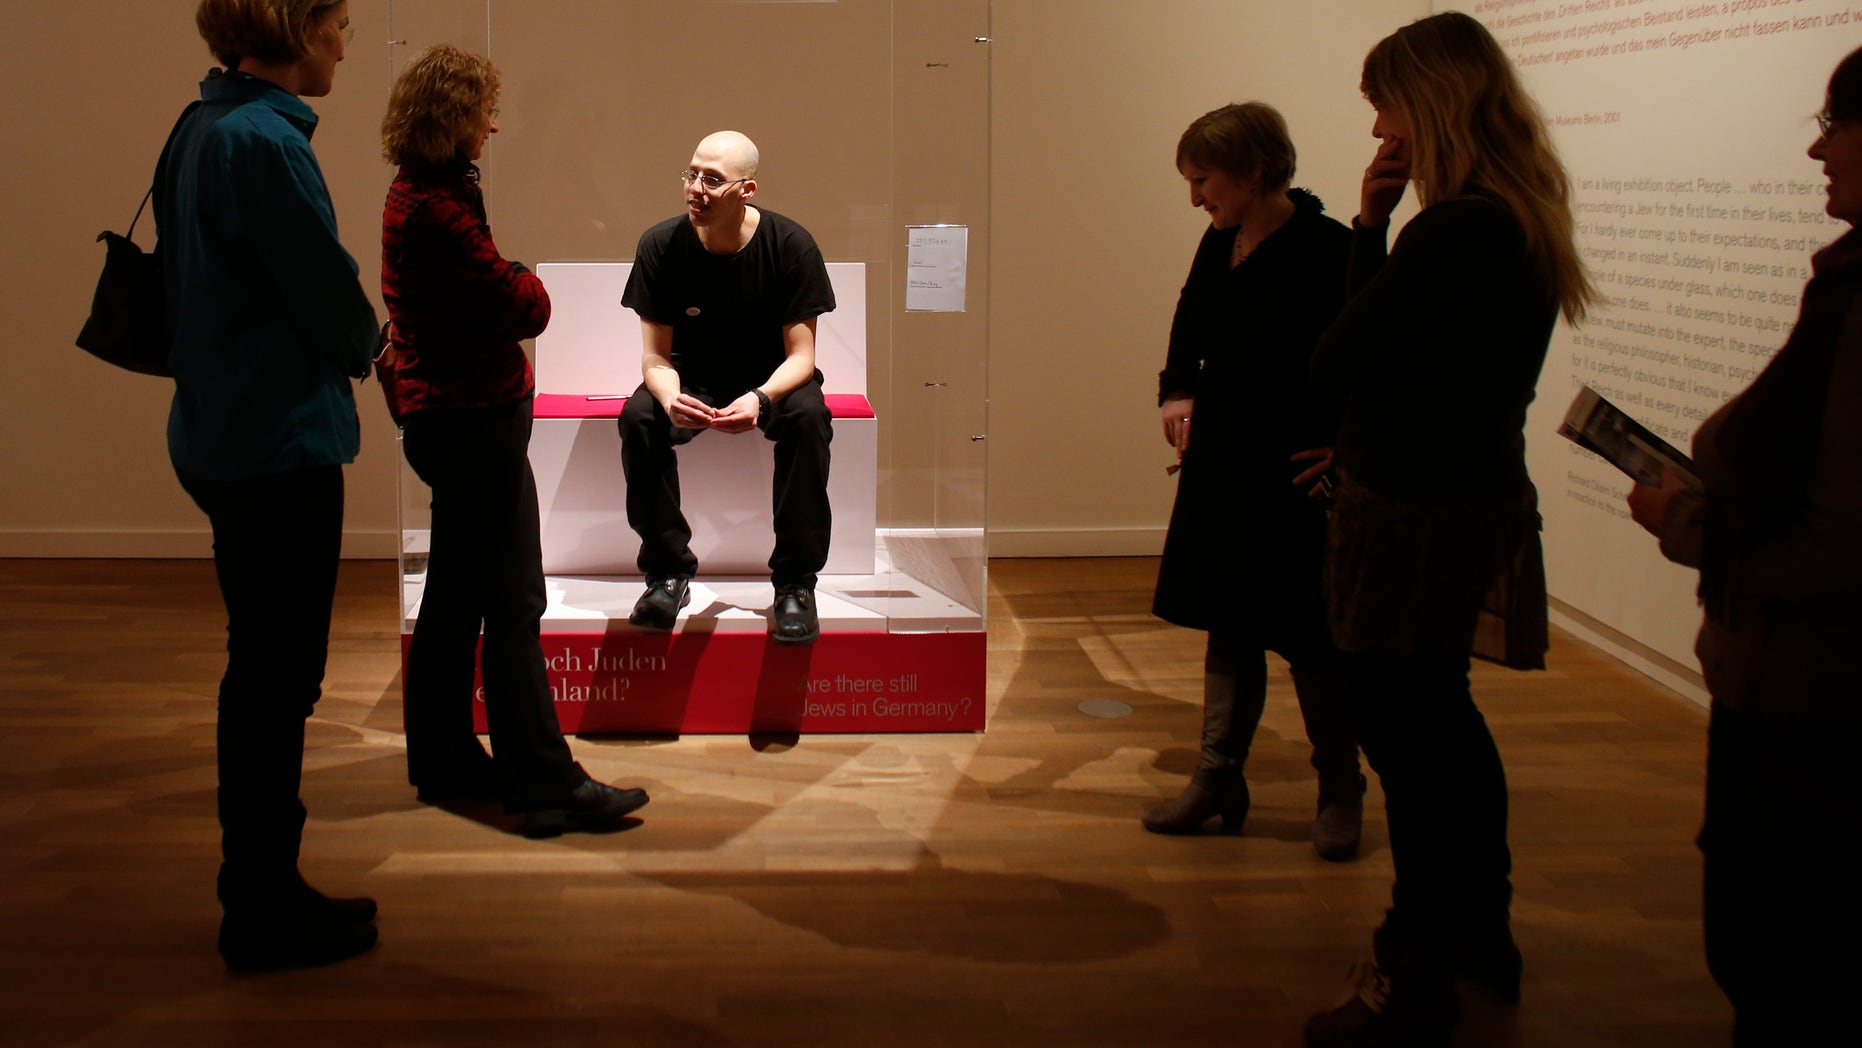 """March 22, 2013 FILE photo: Visitors surround Ido Porat, the 1st person acting as the """"Jew in a glass box,"""" at the exhibition """"The Whole Truth- everything you always wanted to know about Jews"""" at the Jewish Museum in Berlin."""